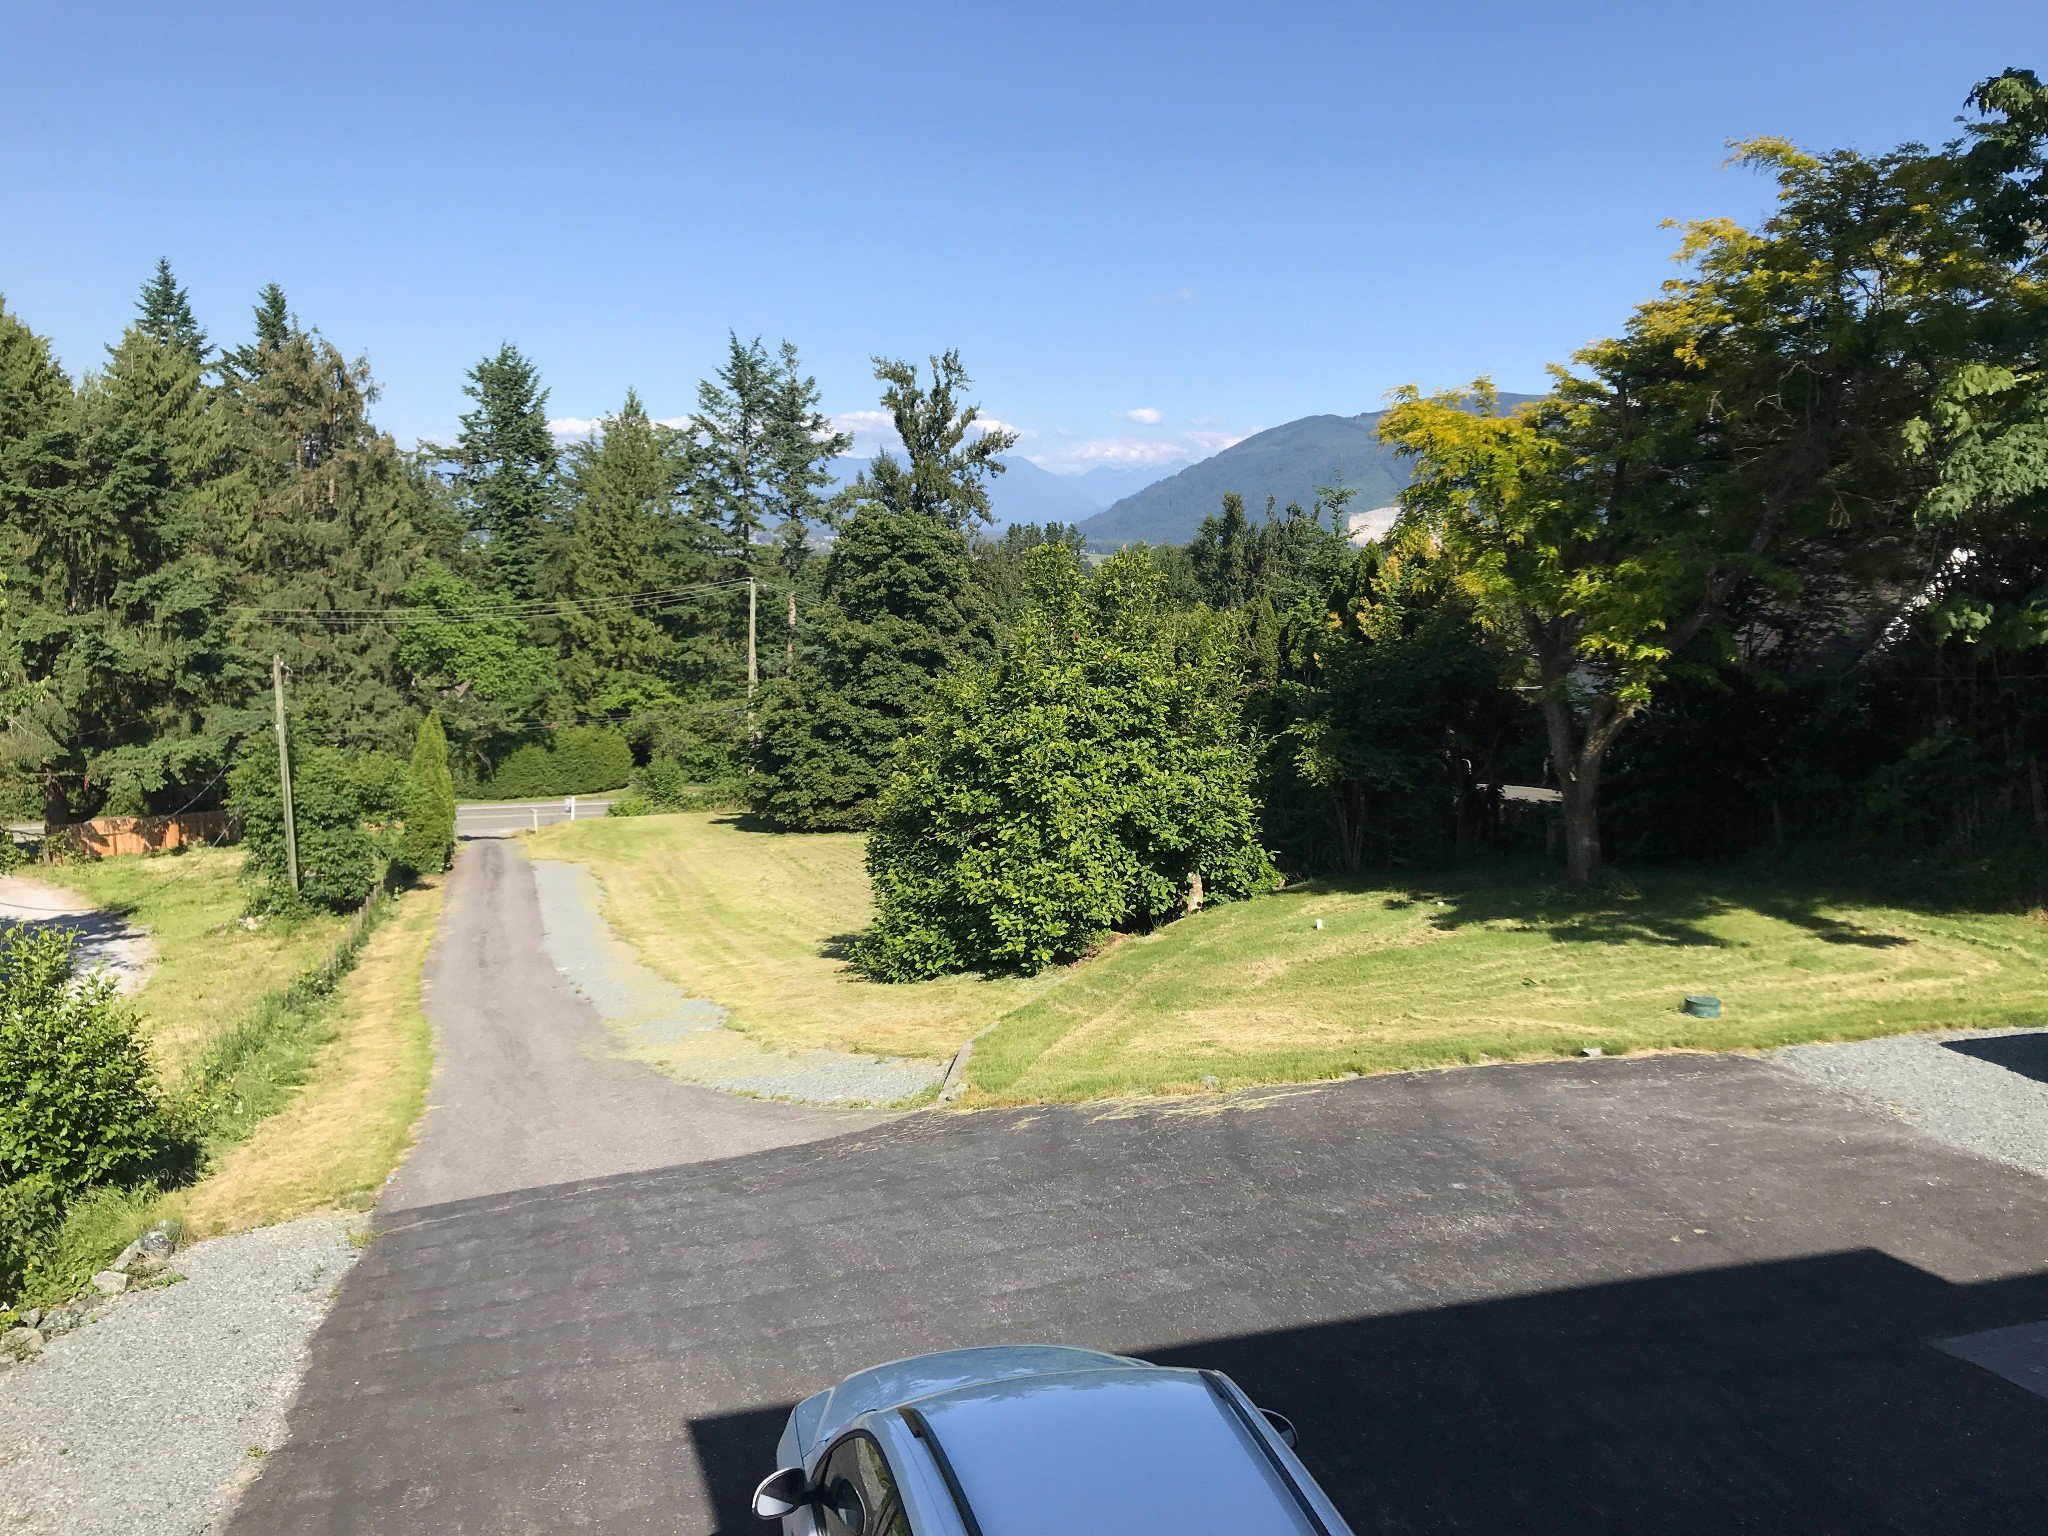 Photo 23: Photos: 34694 Dewdney Trunk Rd. in Mission: House for rent